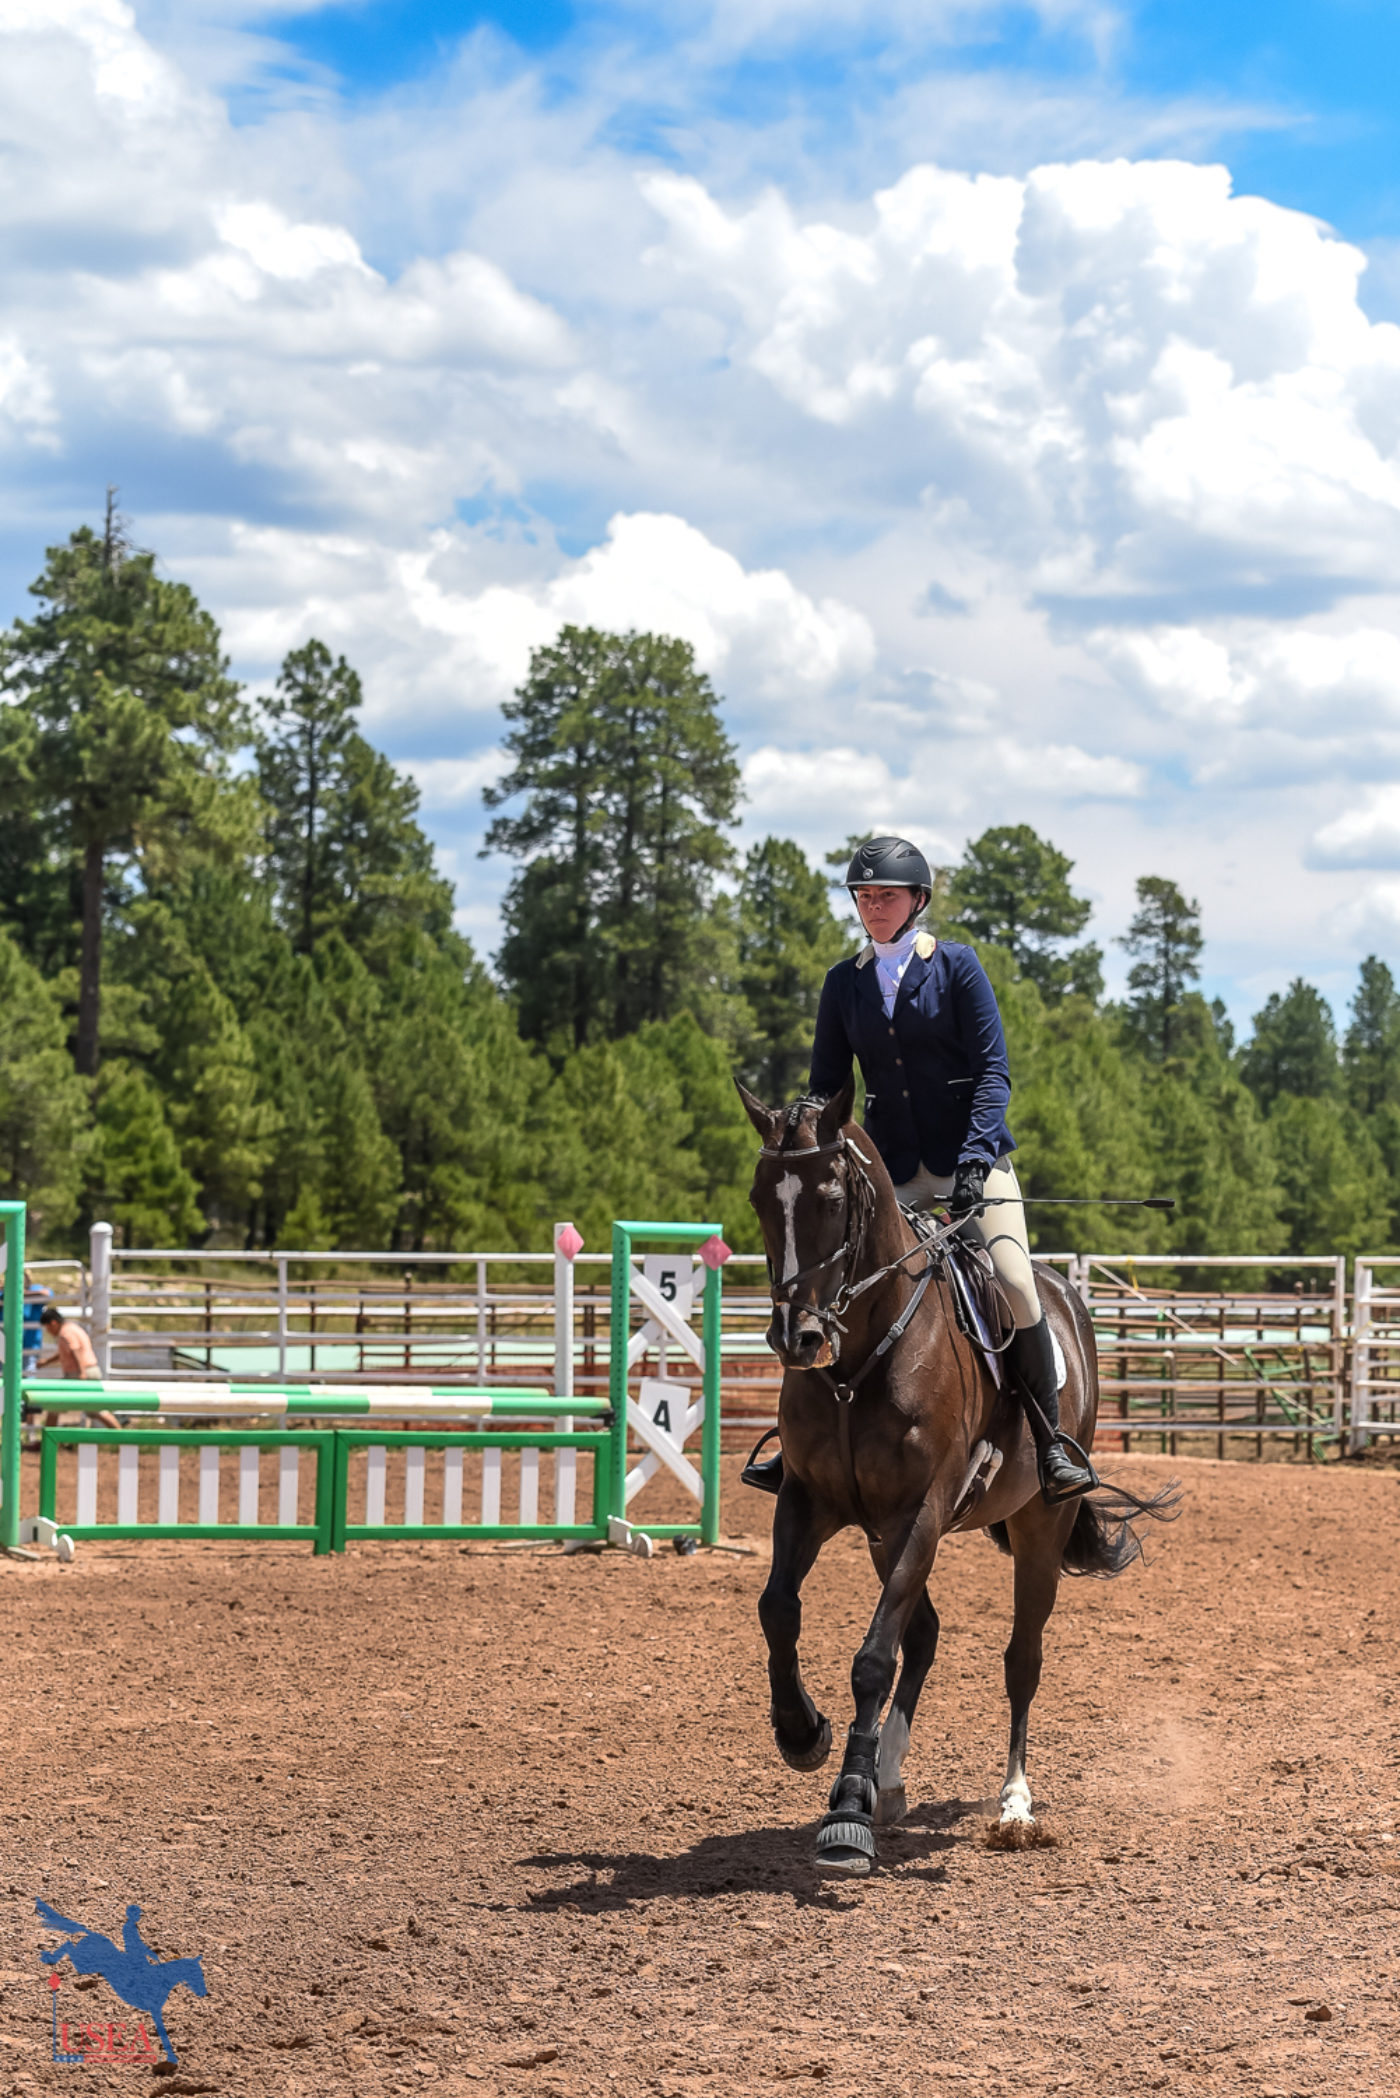 Fort Tuthill County Park provided quite the backdrop for the Classic Series Three-Day Event. USEA/Jessica Duffy Photo.